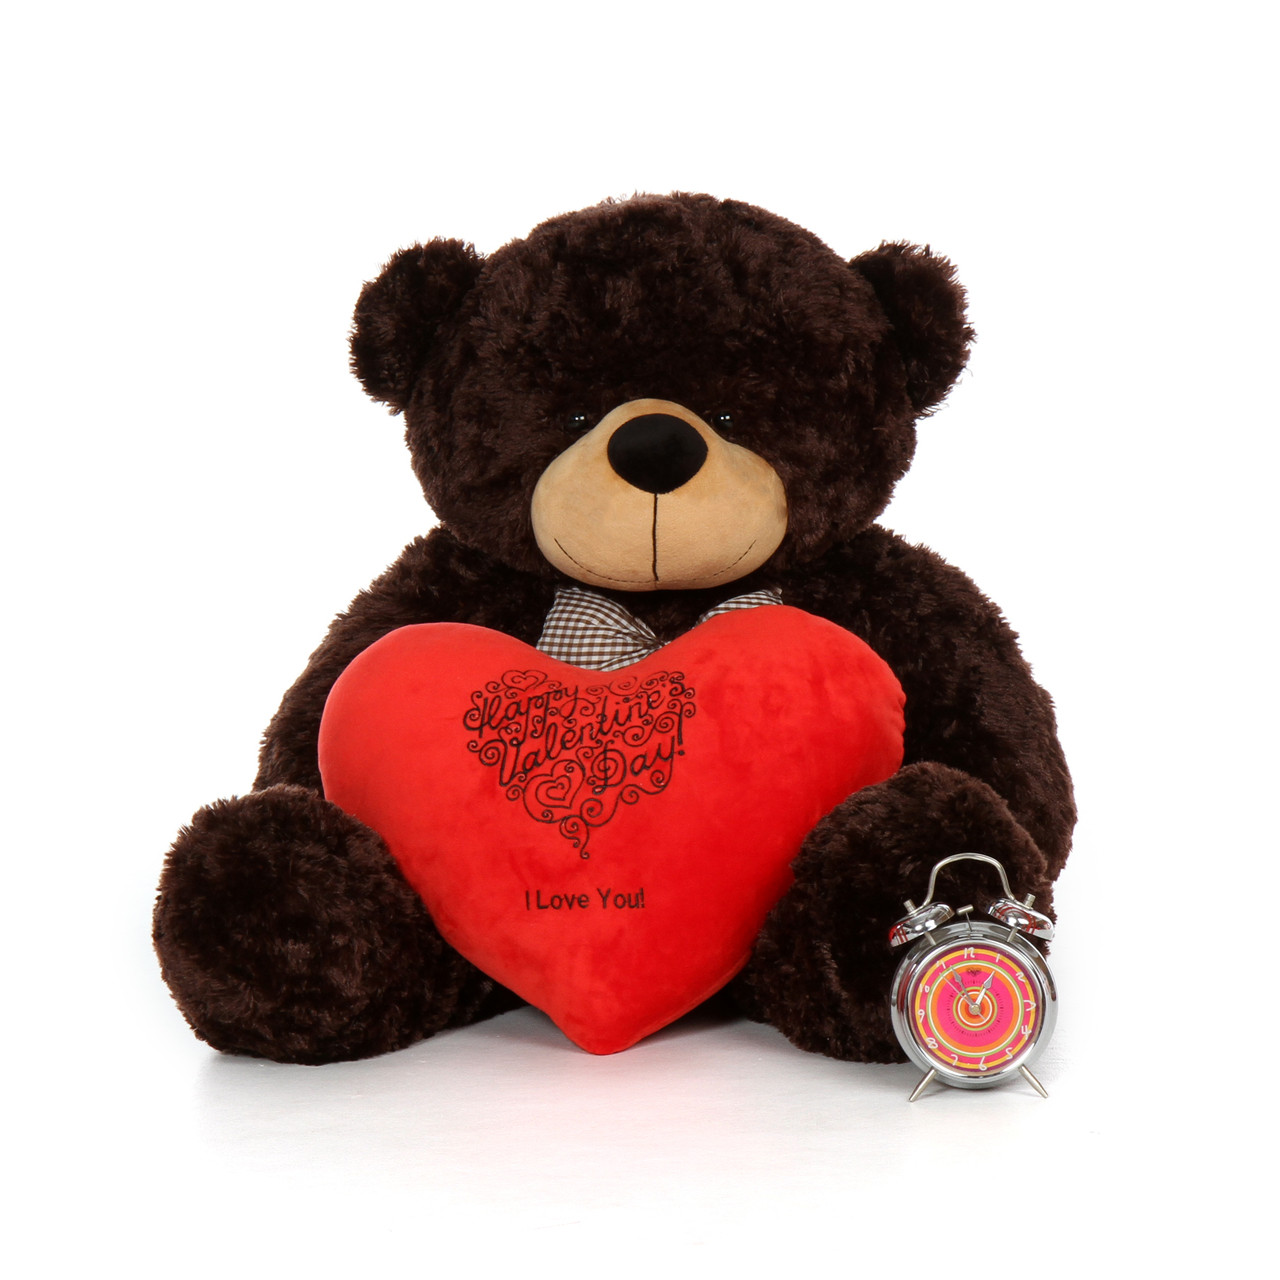 38in happy valentines day i love you teddy bear chocolate brownie cuddles with plush red heart pillow - Giant Teddy Bear For Valentines Day